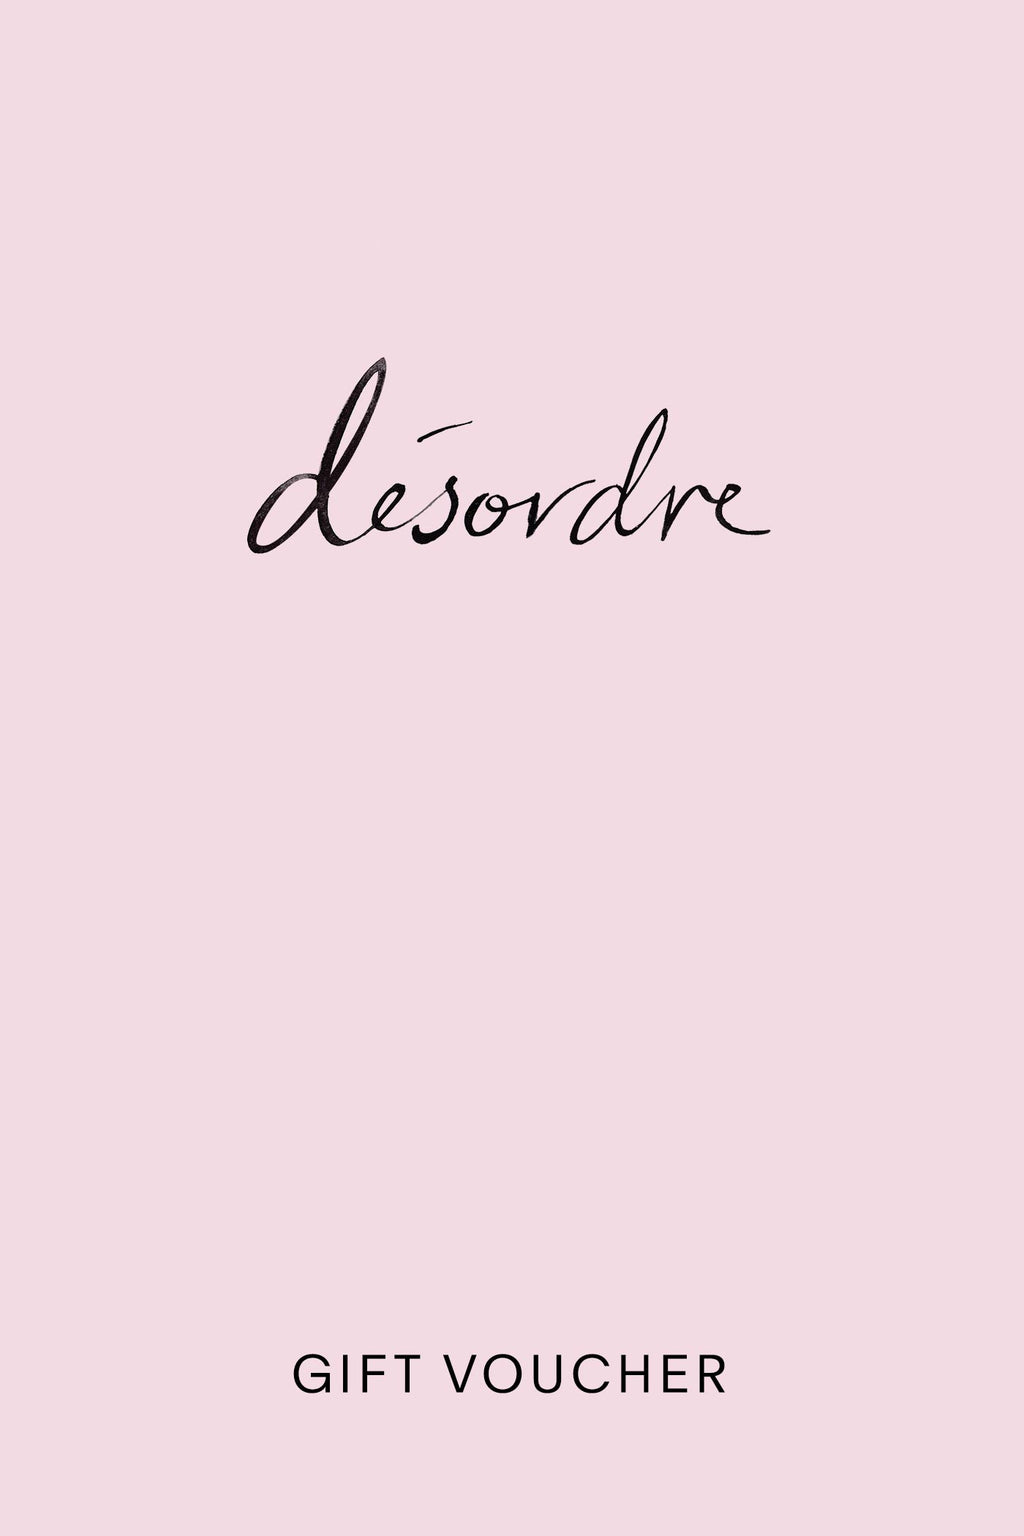 Gift Voucher, Gift Card, Present from Desordre Désordre Boutique, for the girl that has everything